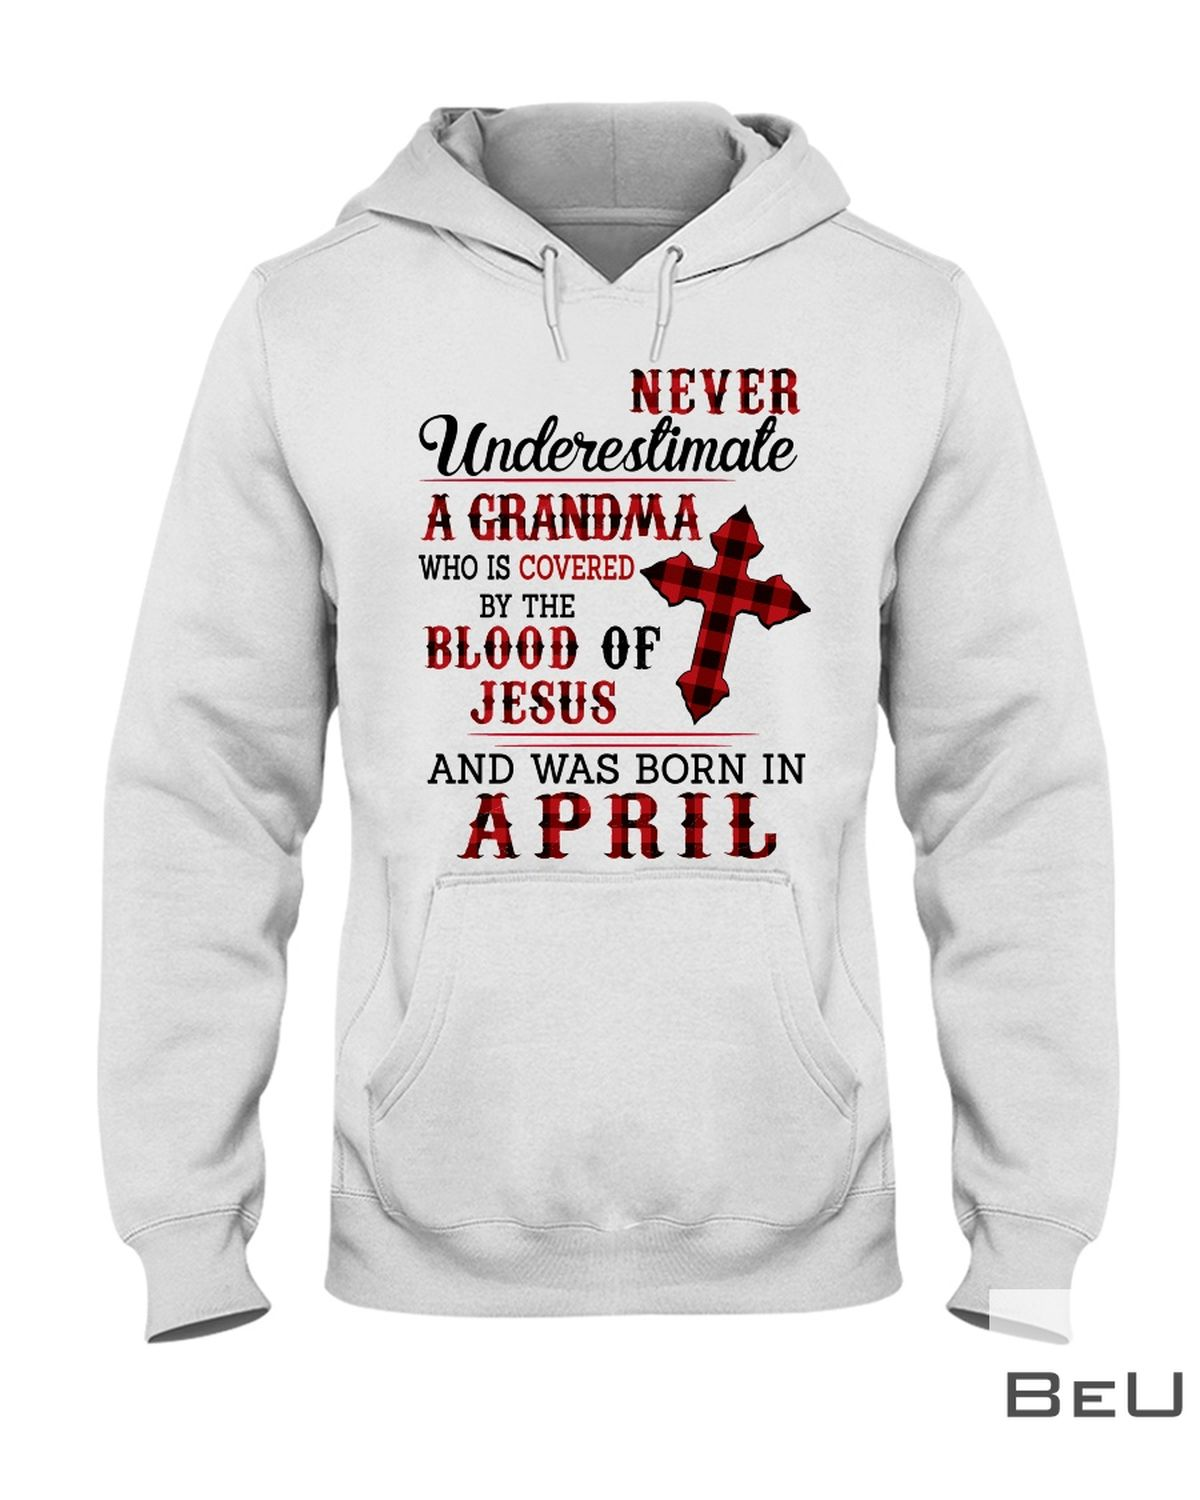 Never Underestimate A Grandma Who Is Covered By The Blood Of Jesus And Was Born In April Shirtx